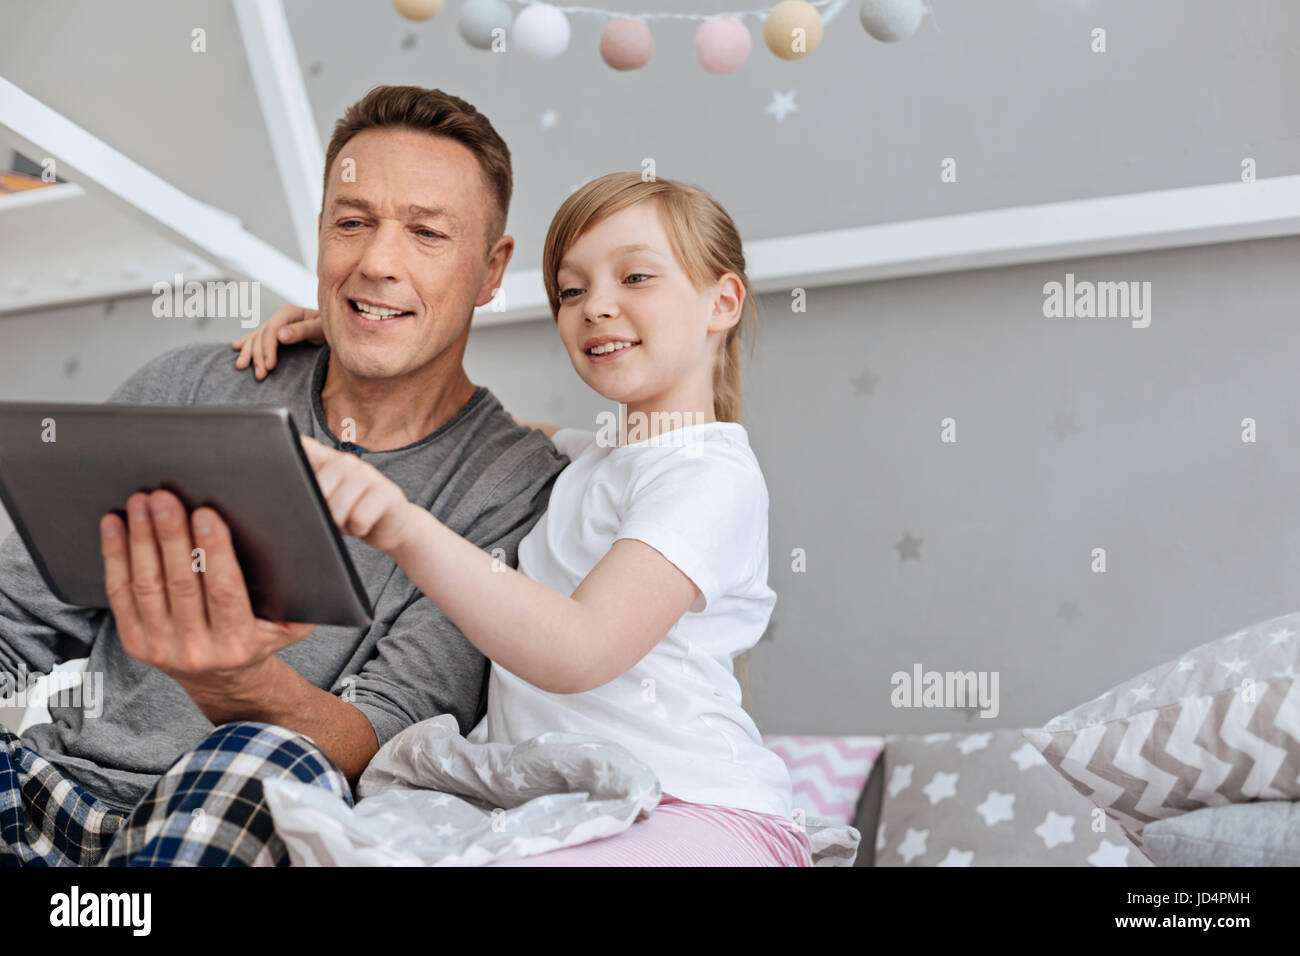 Cute engaged family watching something on tablet - Stock Image